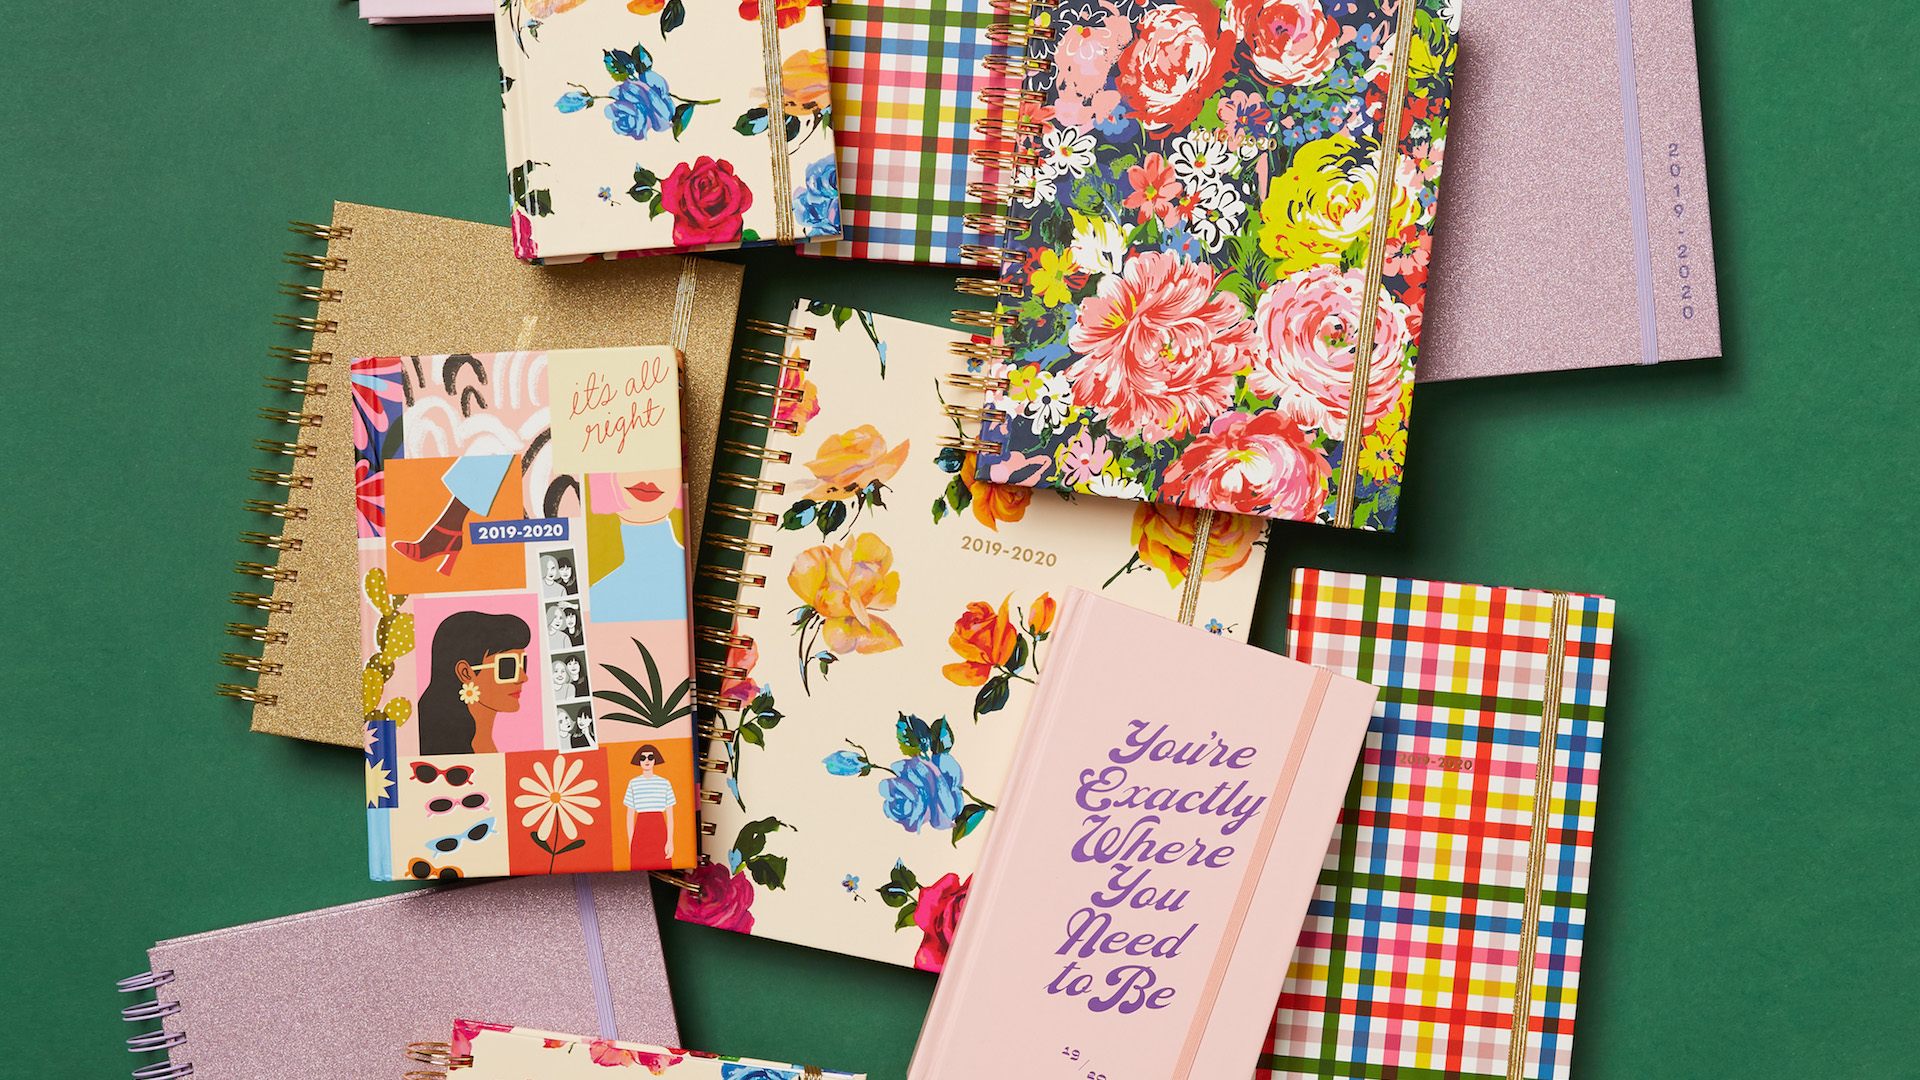 Ban.do Just Gave You the Perfect Excuse to Buy a Planner in the Middle of the Year